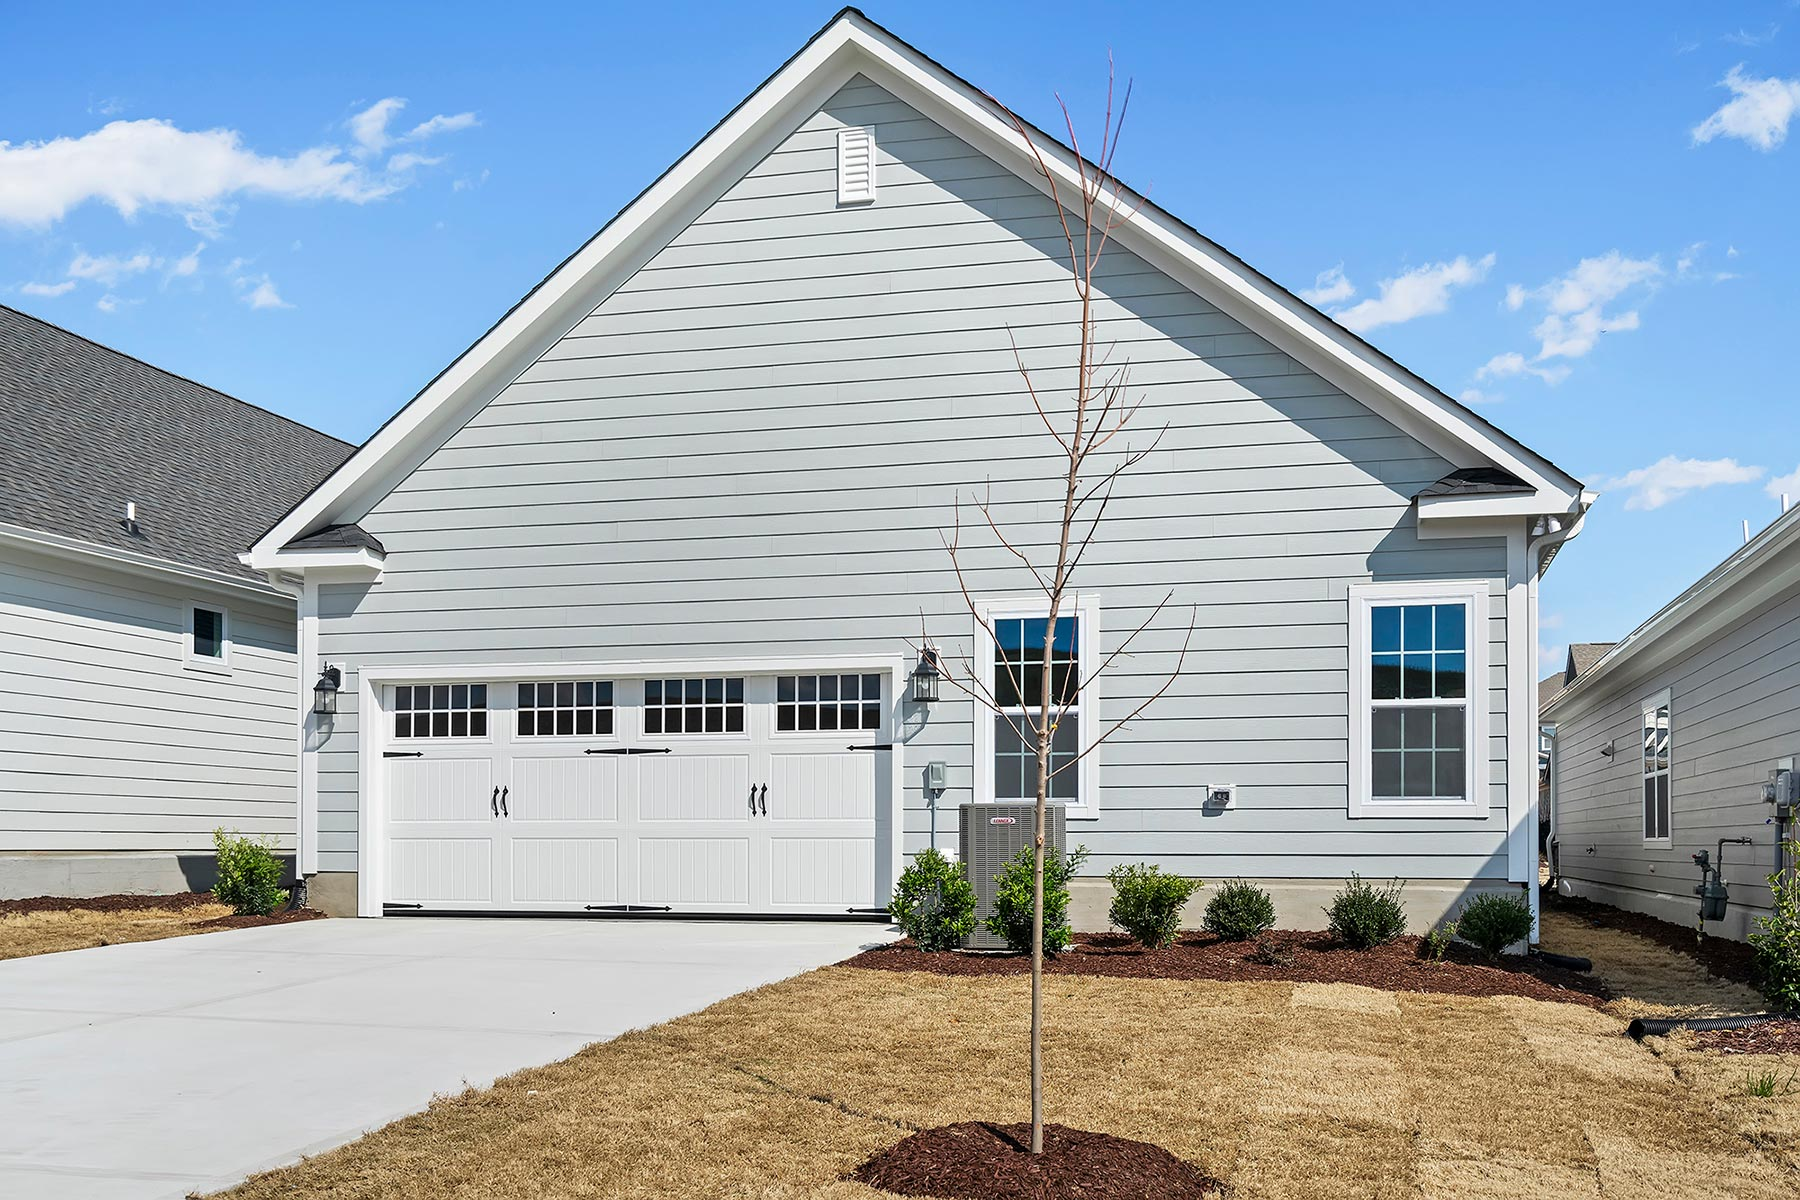 Tucker Plan Elevation Back Side at Wendell Falls in Wendell North Carolina by Mattamy Homes